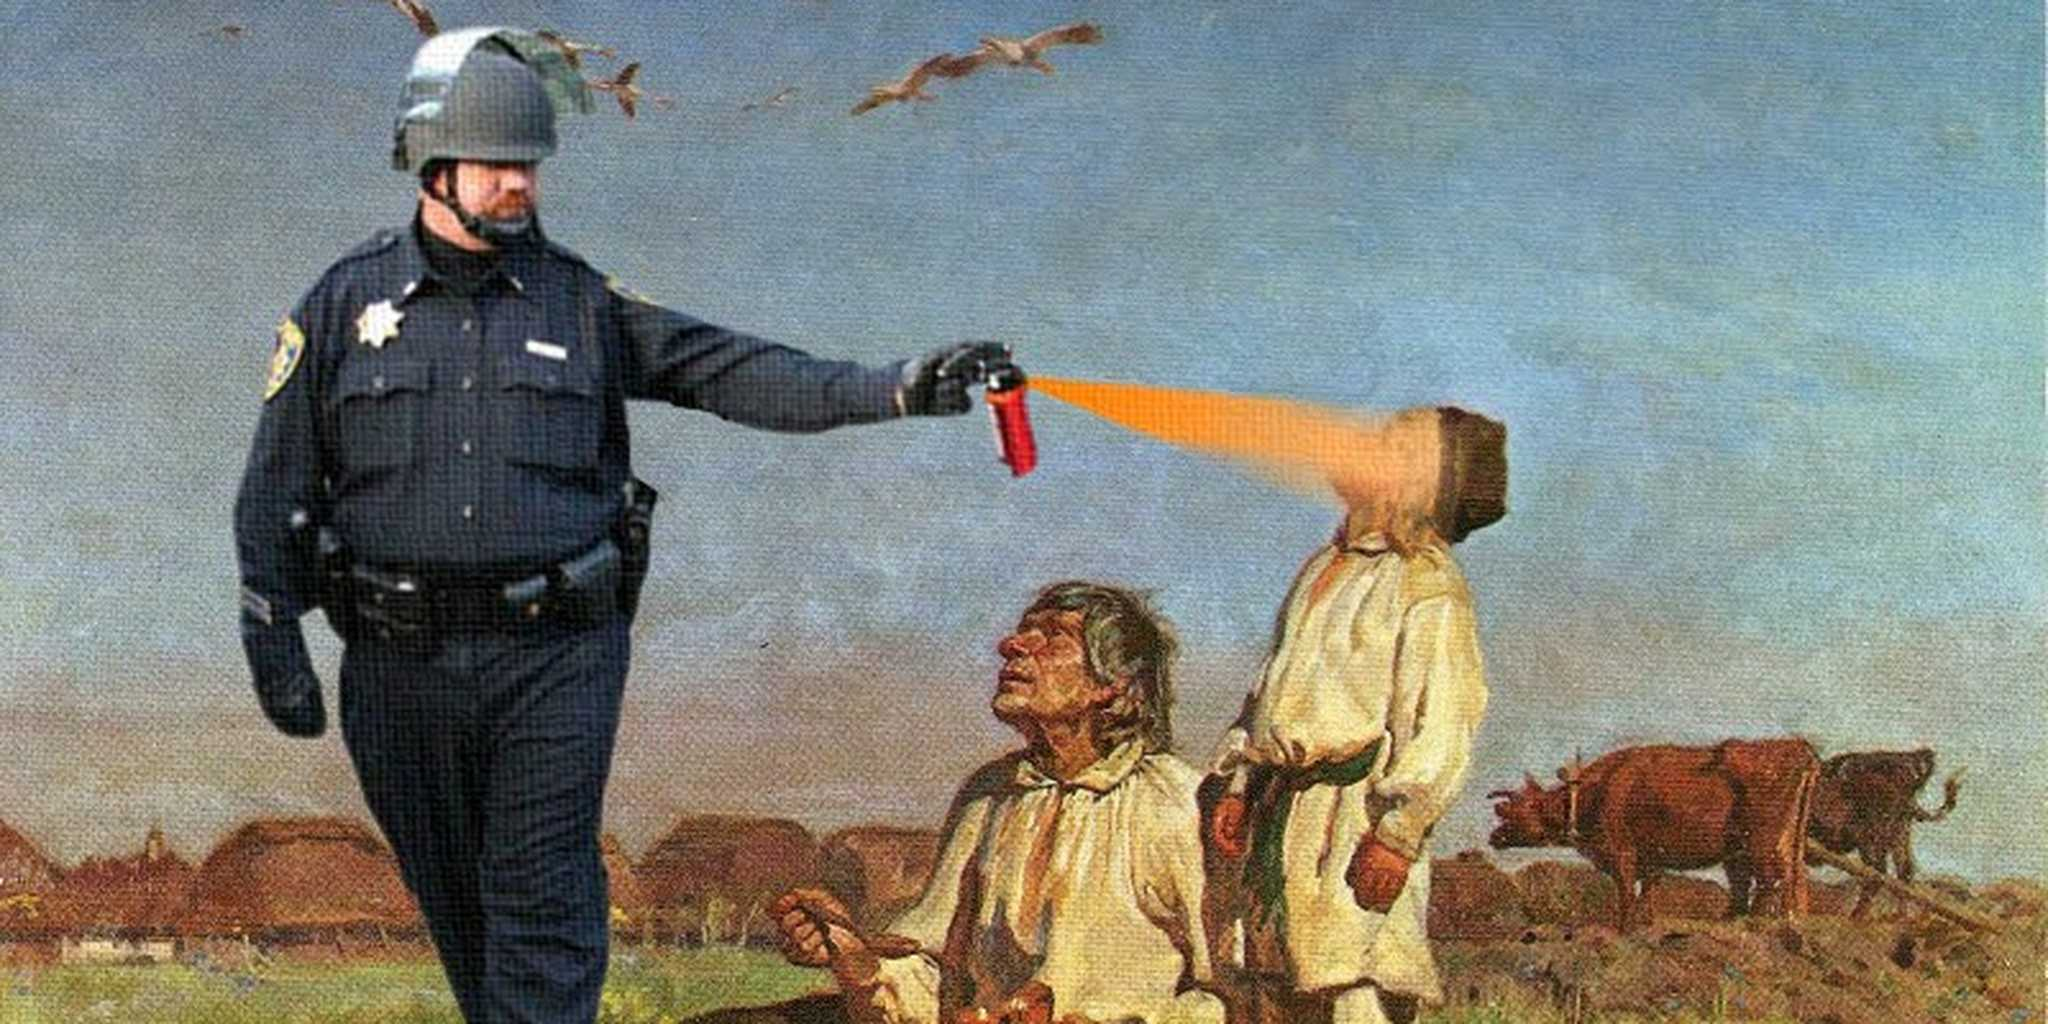 Pepper Spray Bociany | Flickr - Photo Sharing!